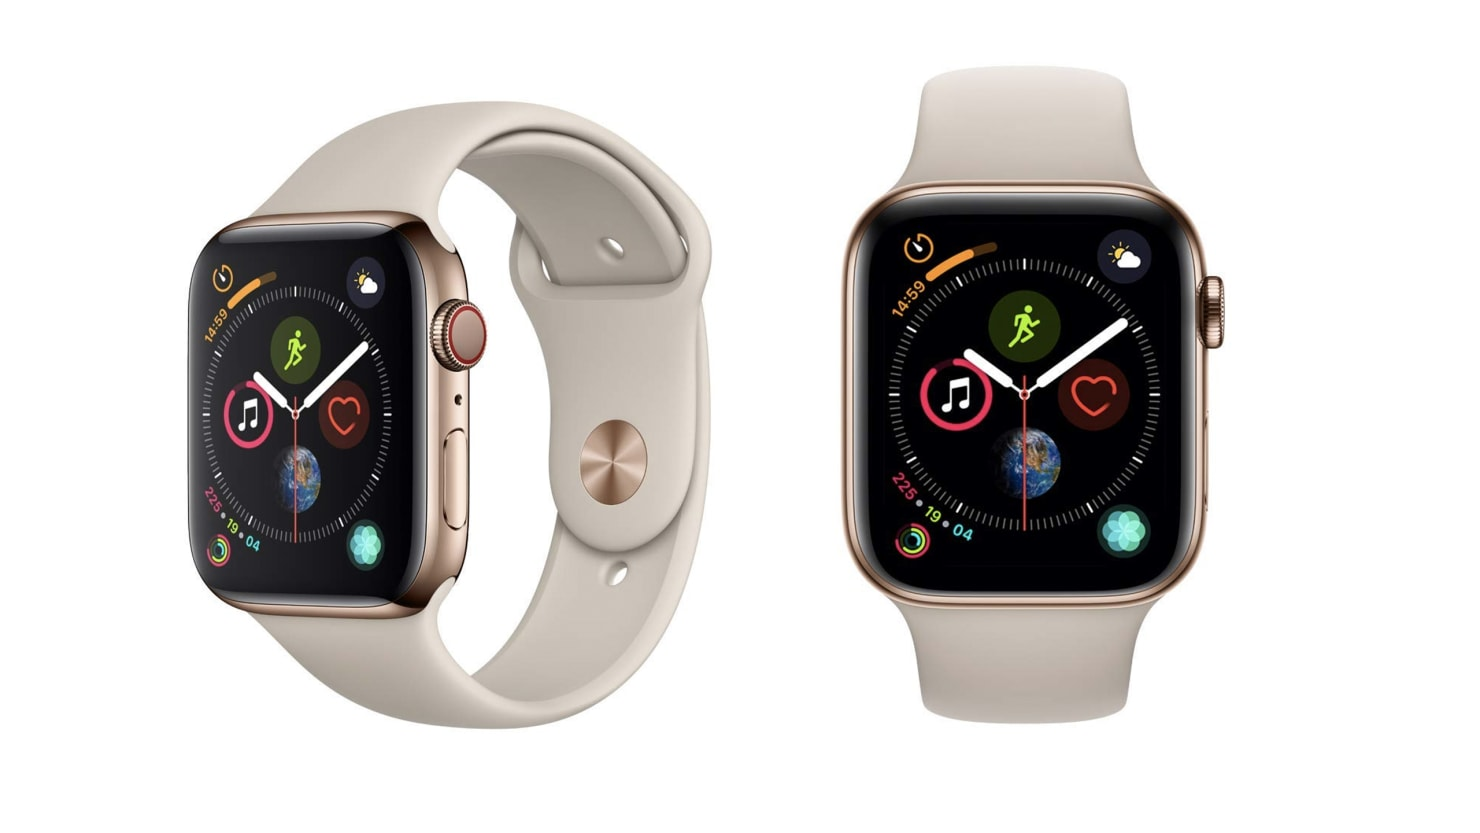 Strap the Apple Watch 4 With the Largest Display Onto Your Wrist While It's $70 Off